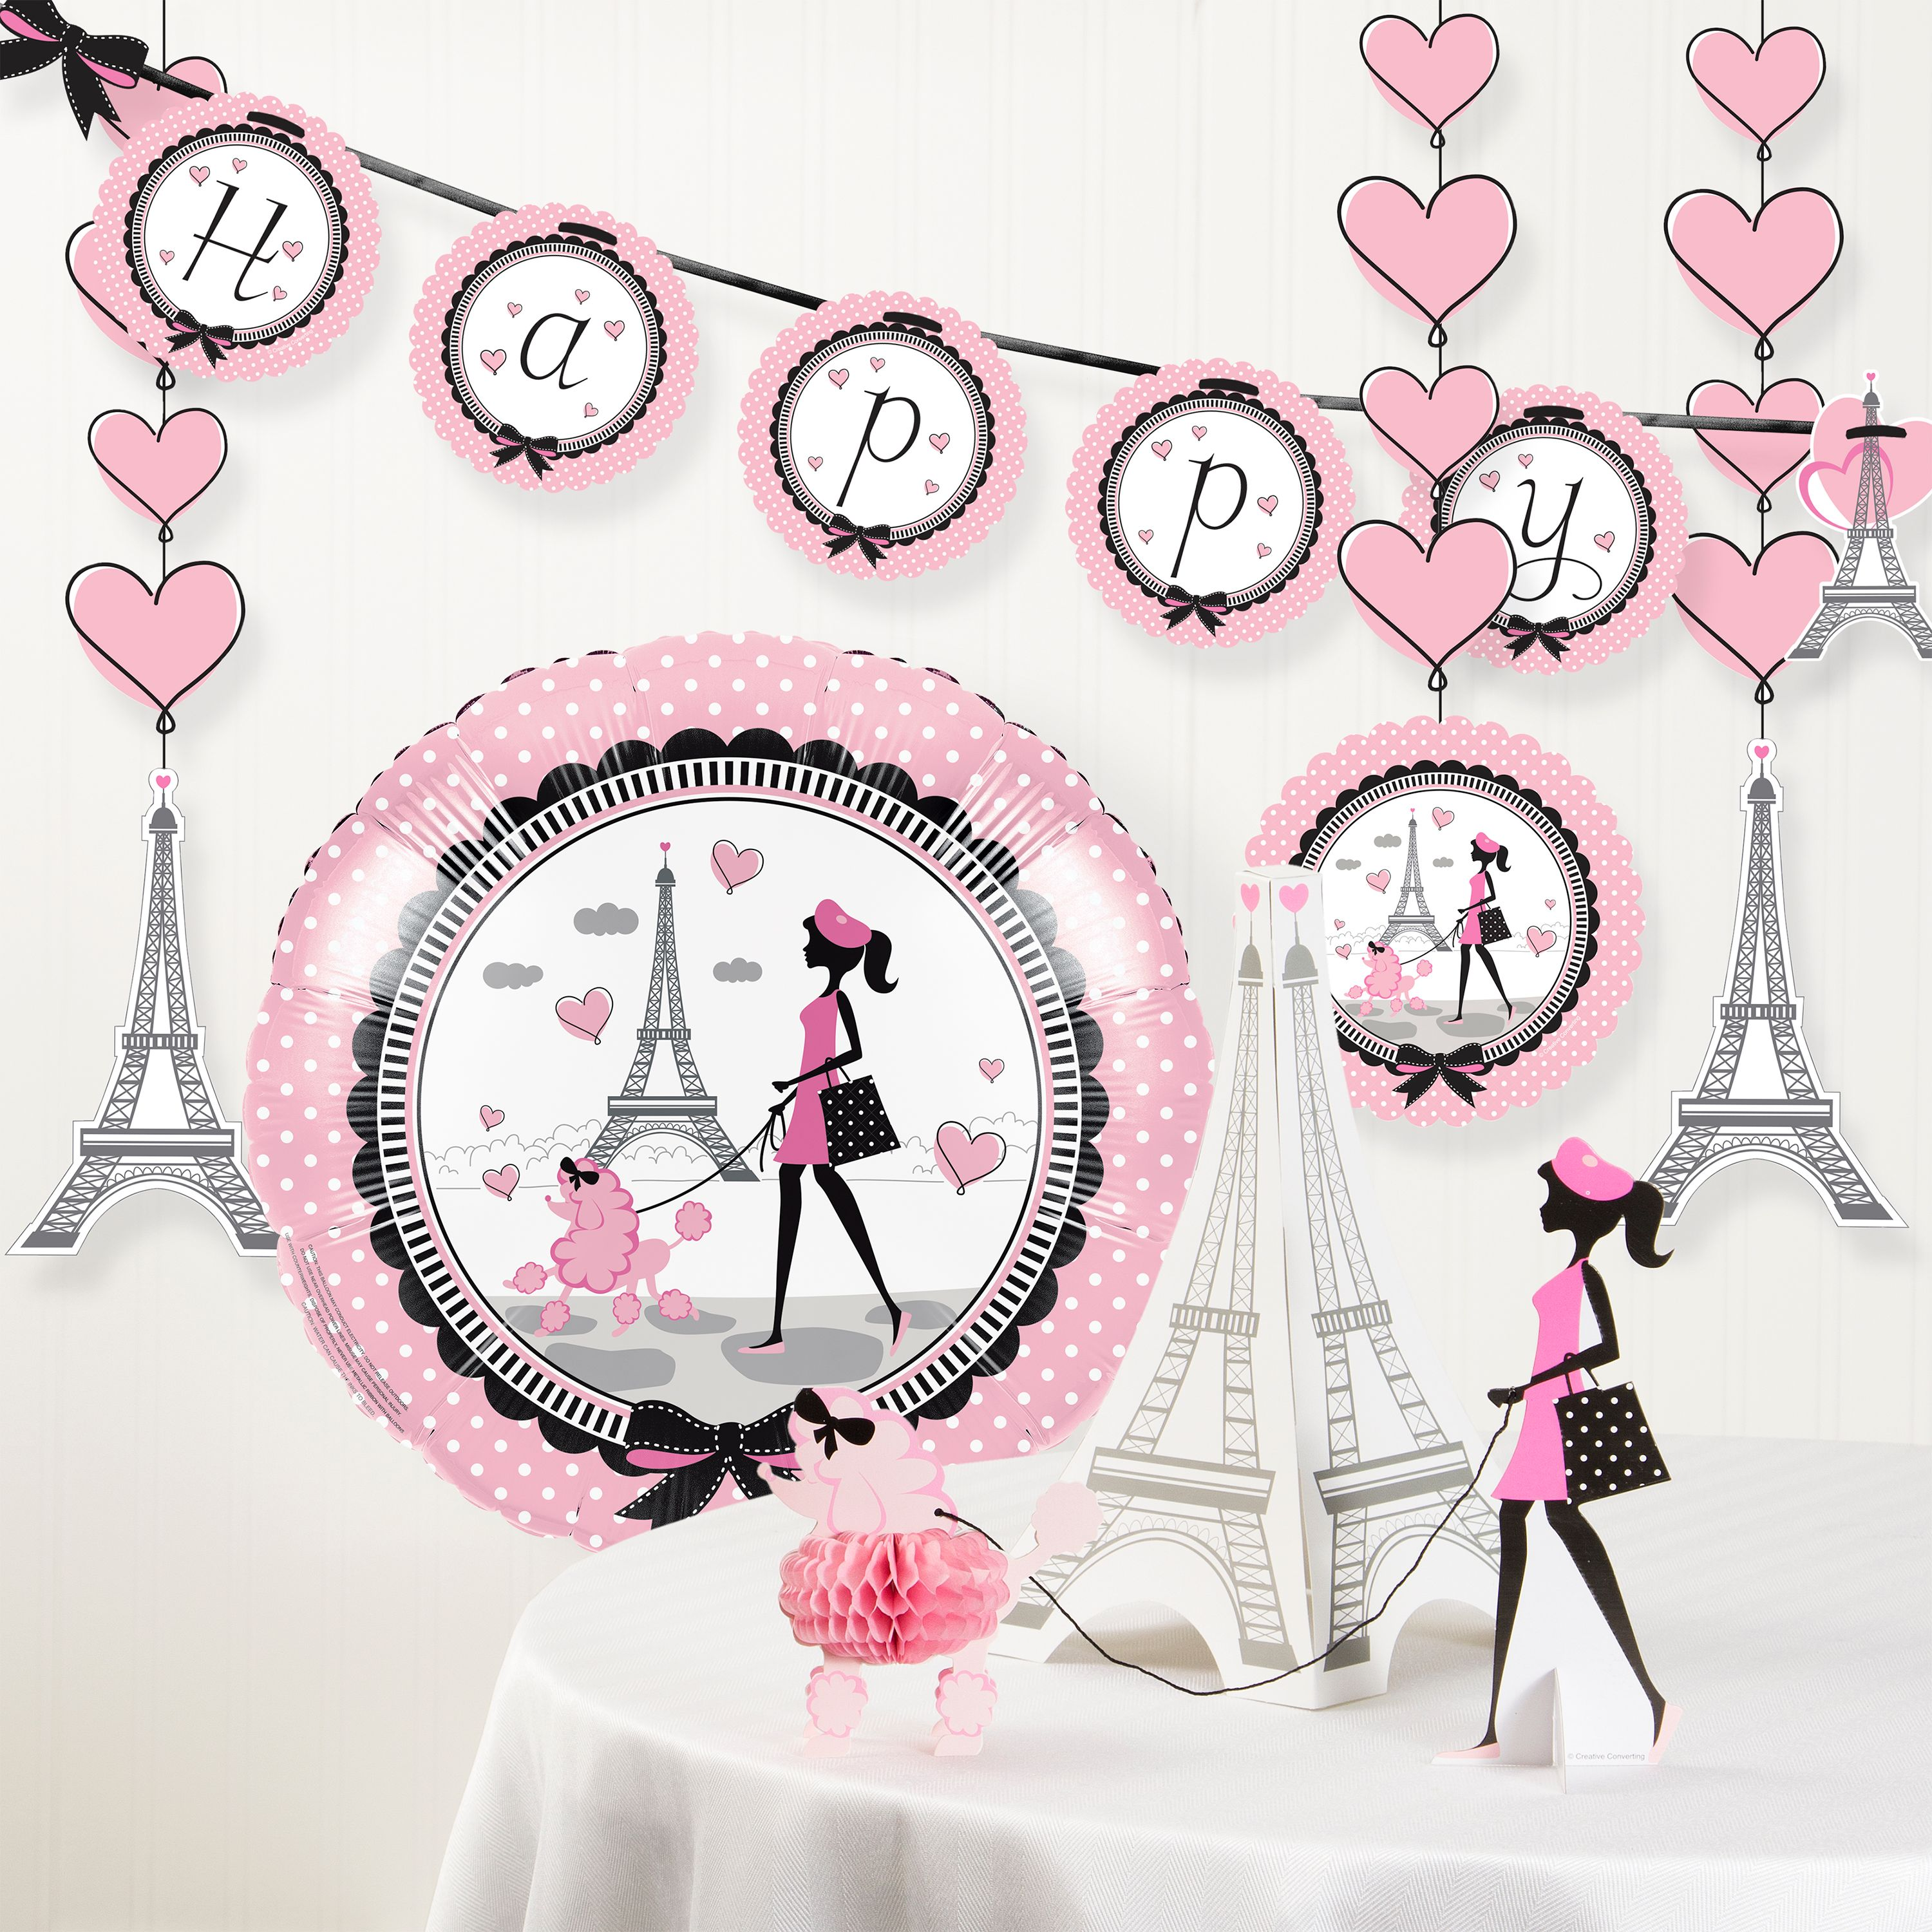 Party in Paris Birthday Party Decorations Kit